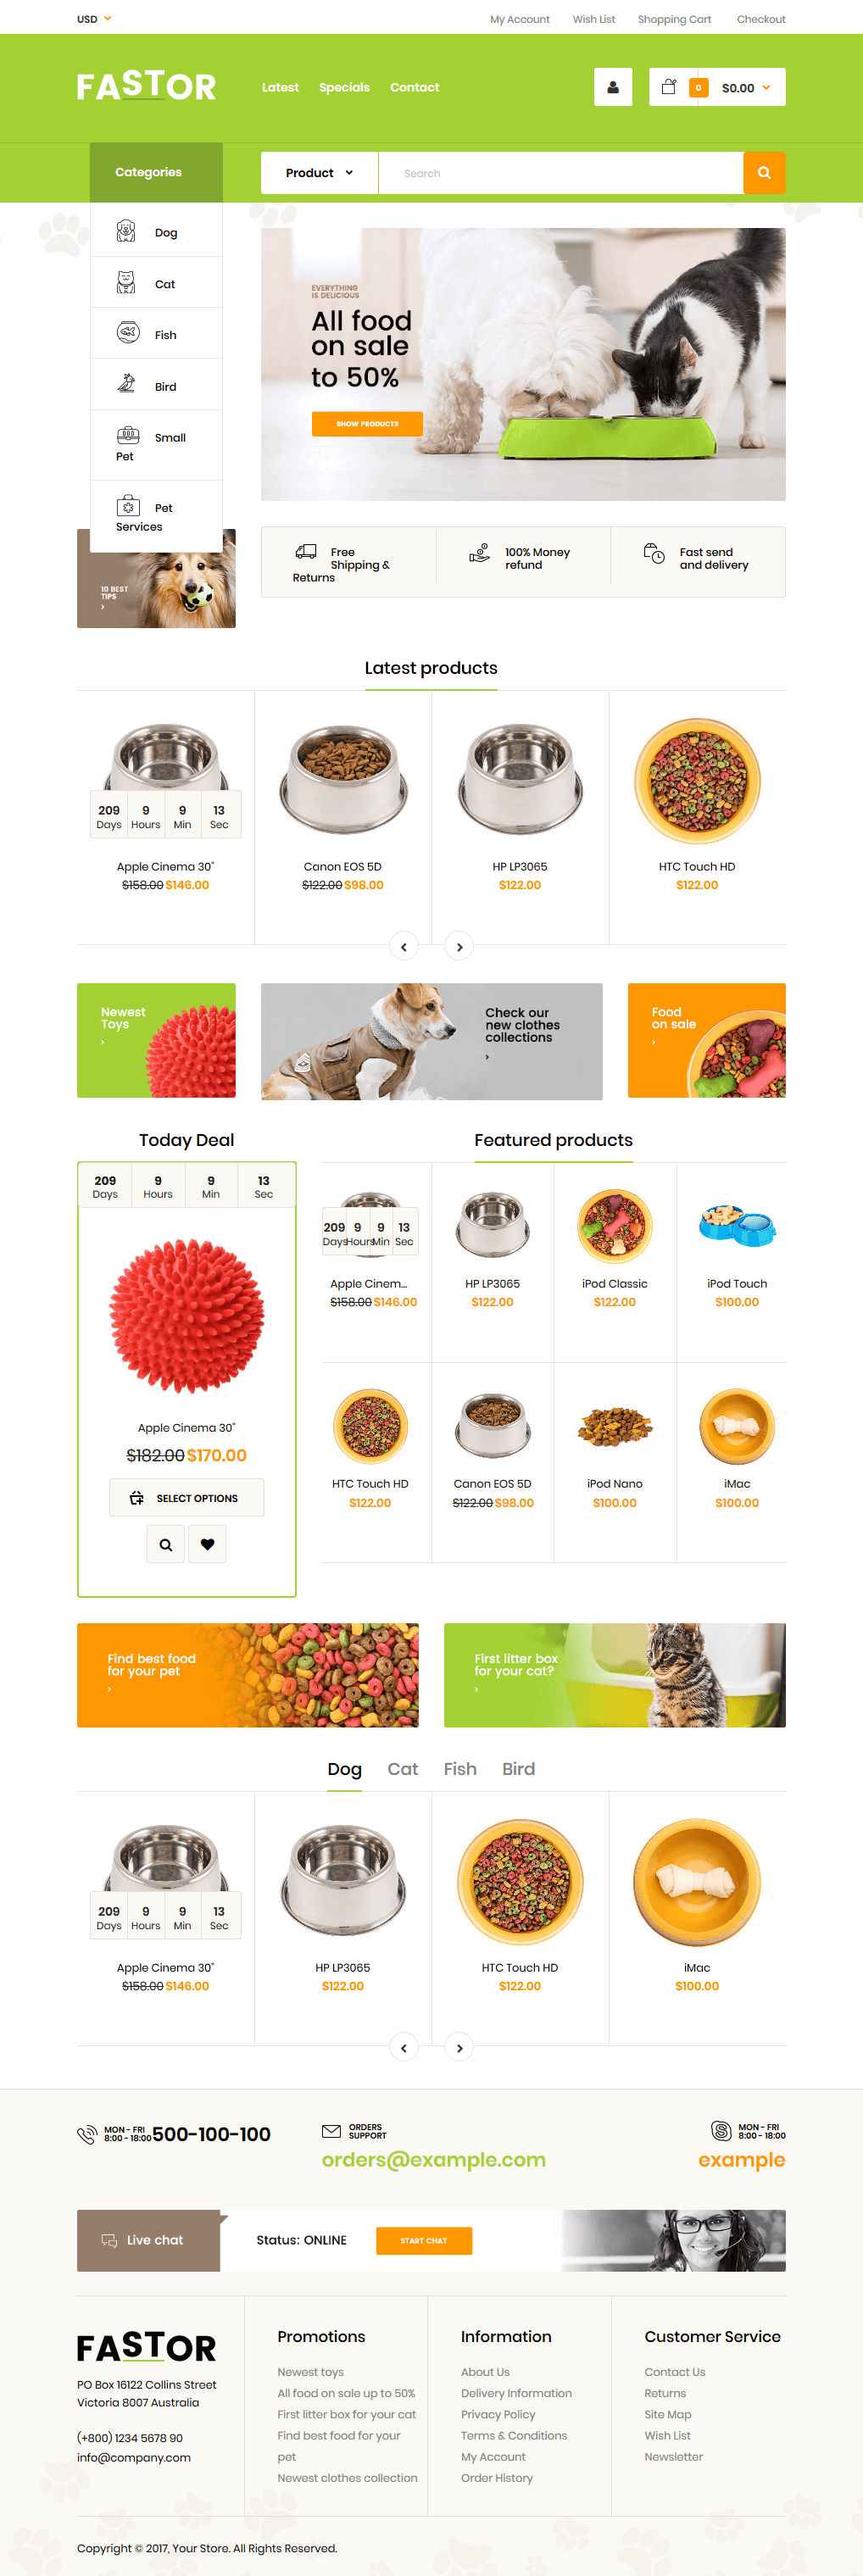 Highly recommend lovely Shopify themes for Pet Shop